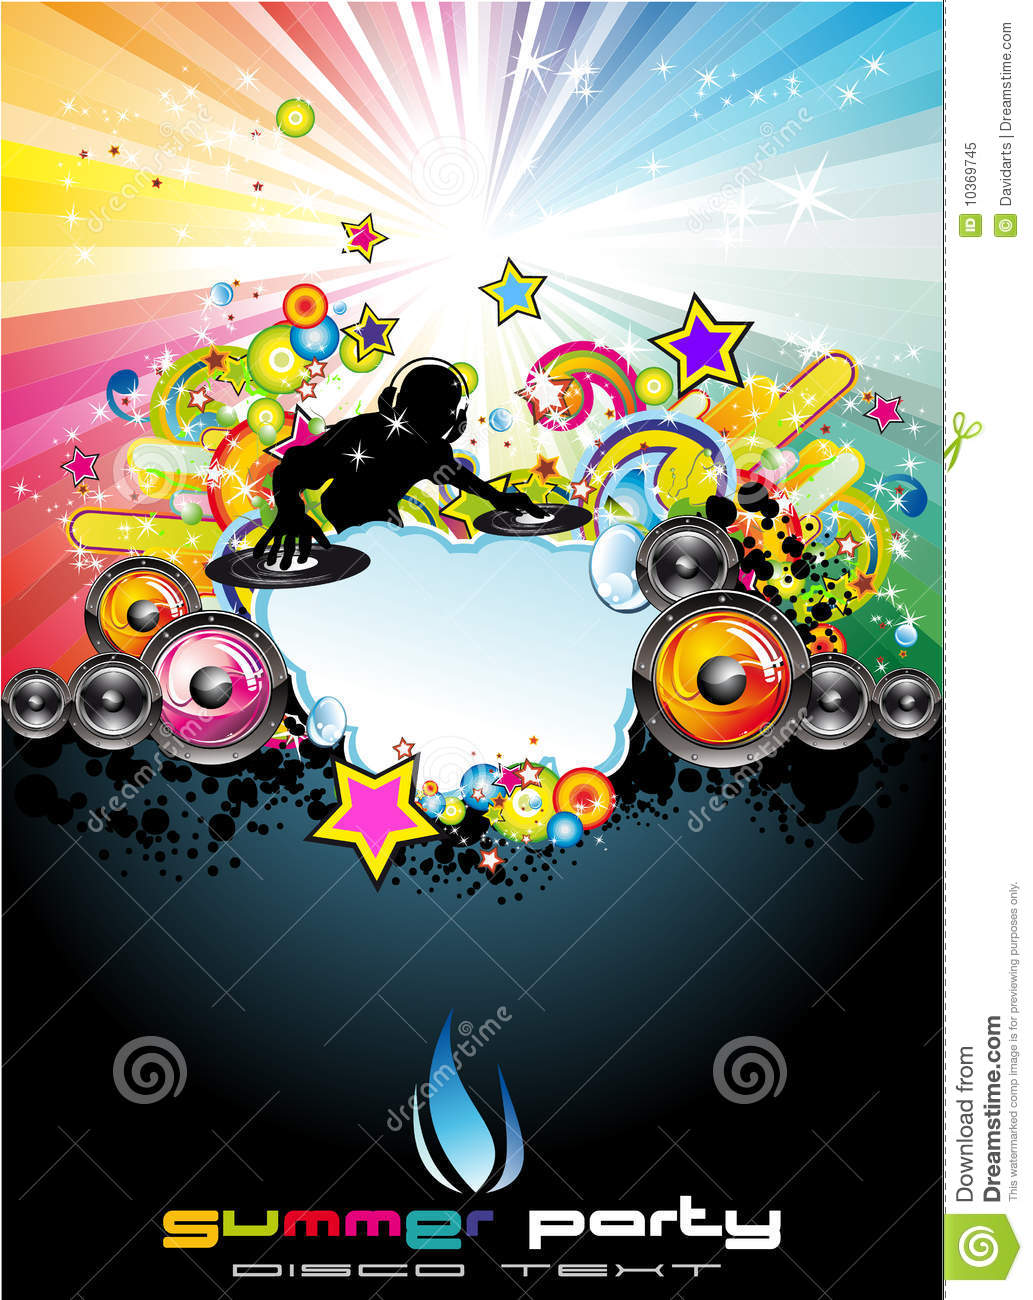 More similar stock images of music event abstract background